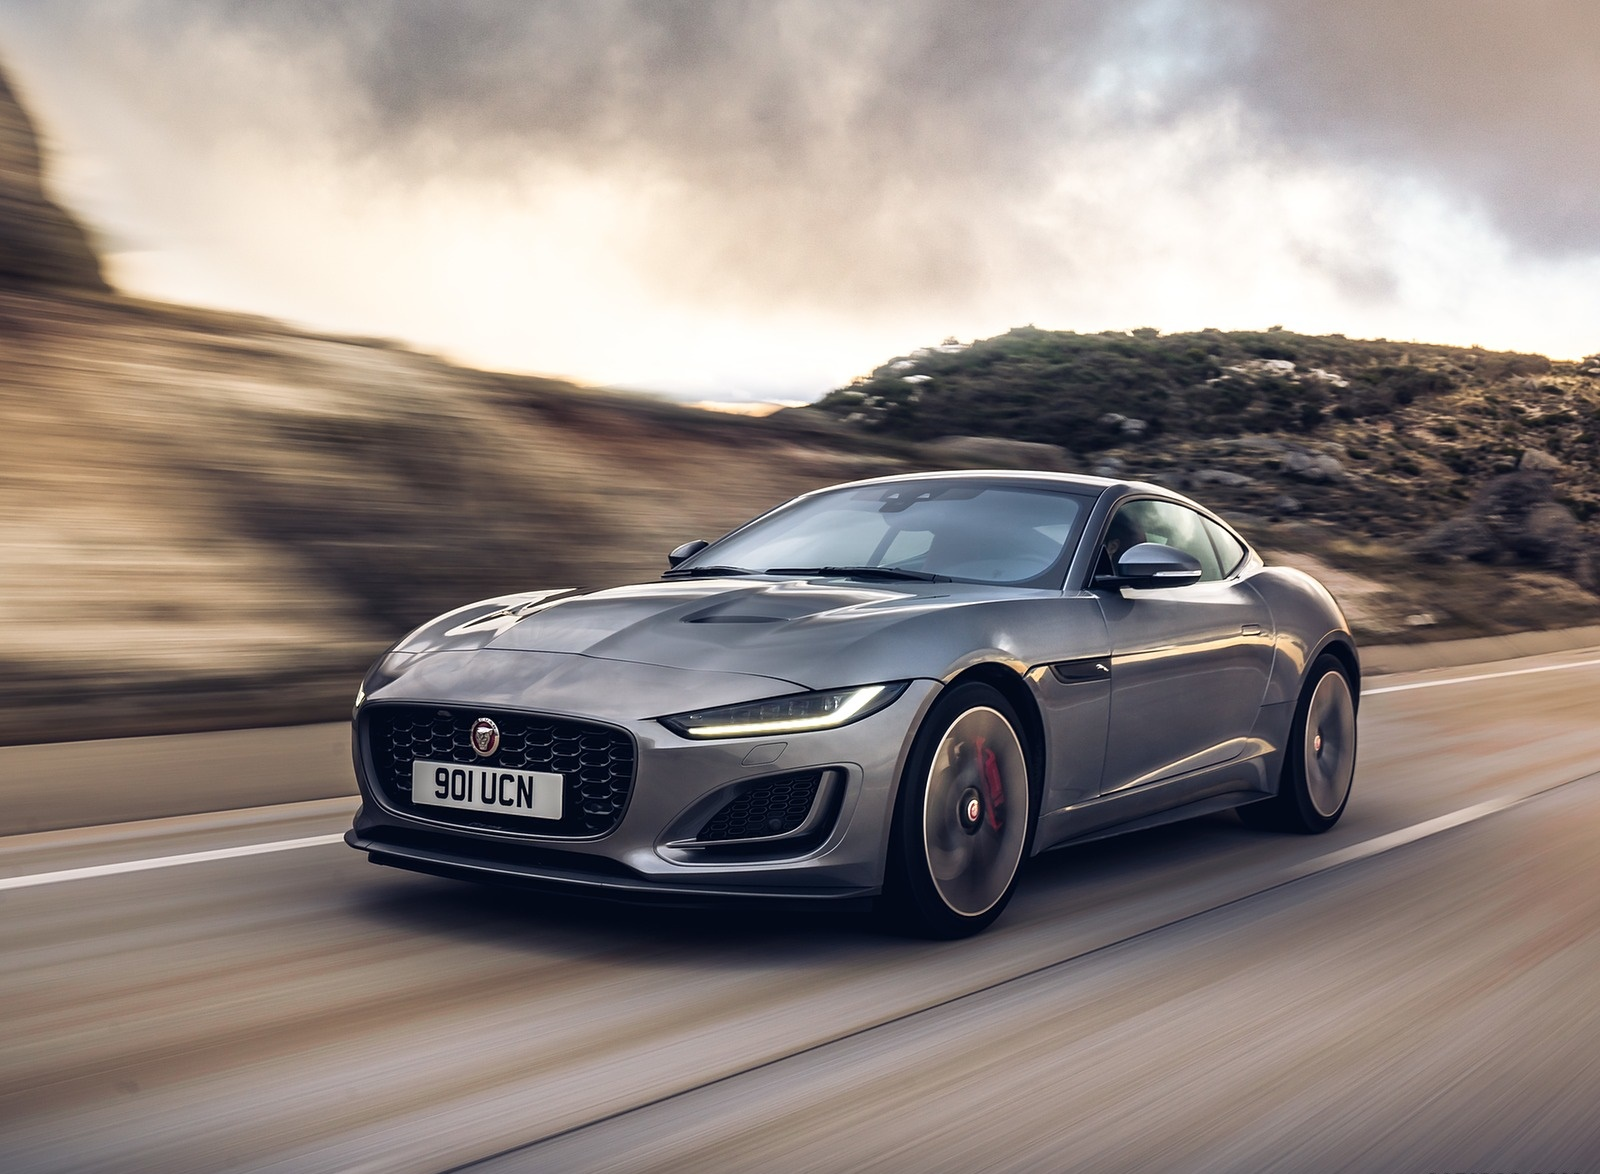 2021 Jaguar F-TYPE P300 Coupe RWD (Color: Eiger Grey) Front Three-Quarter Wallpapers (1)